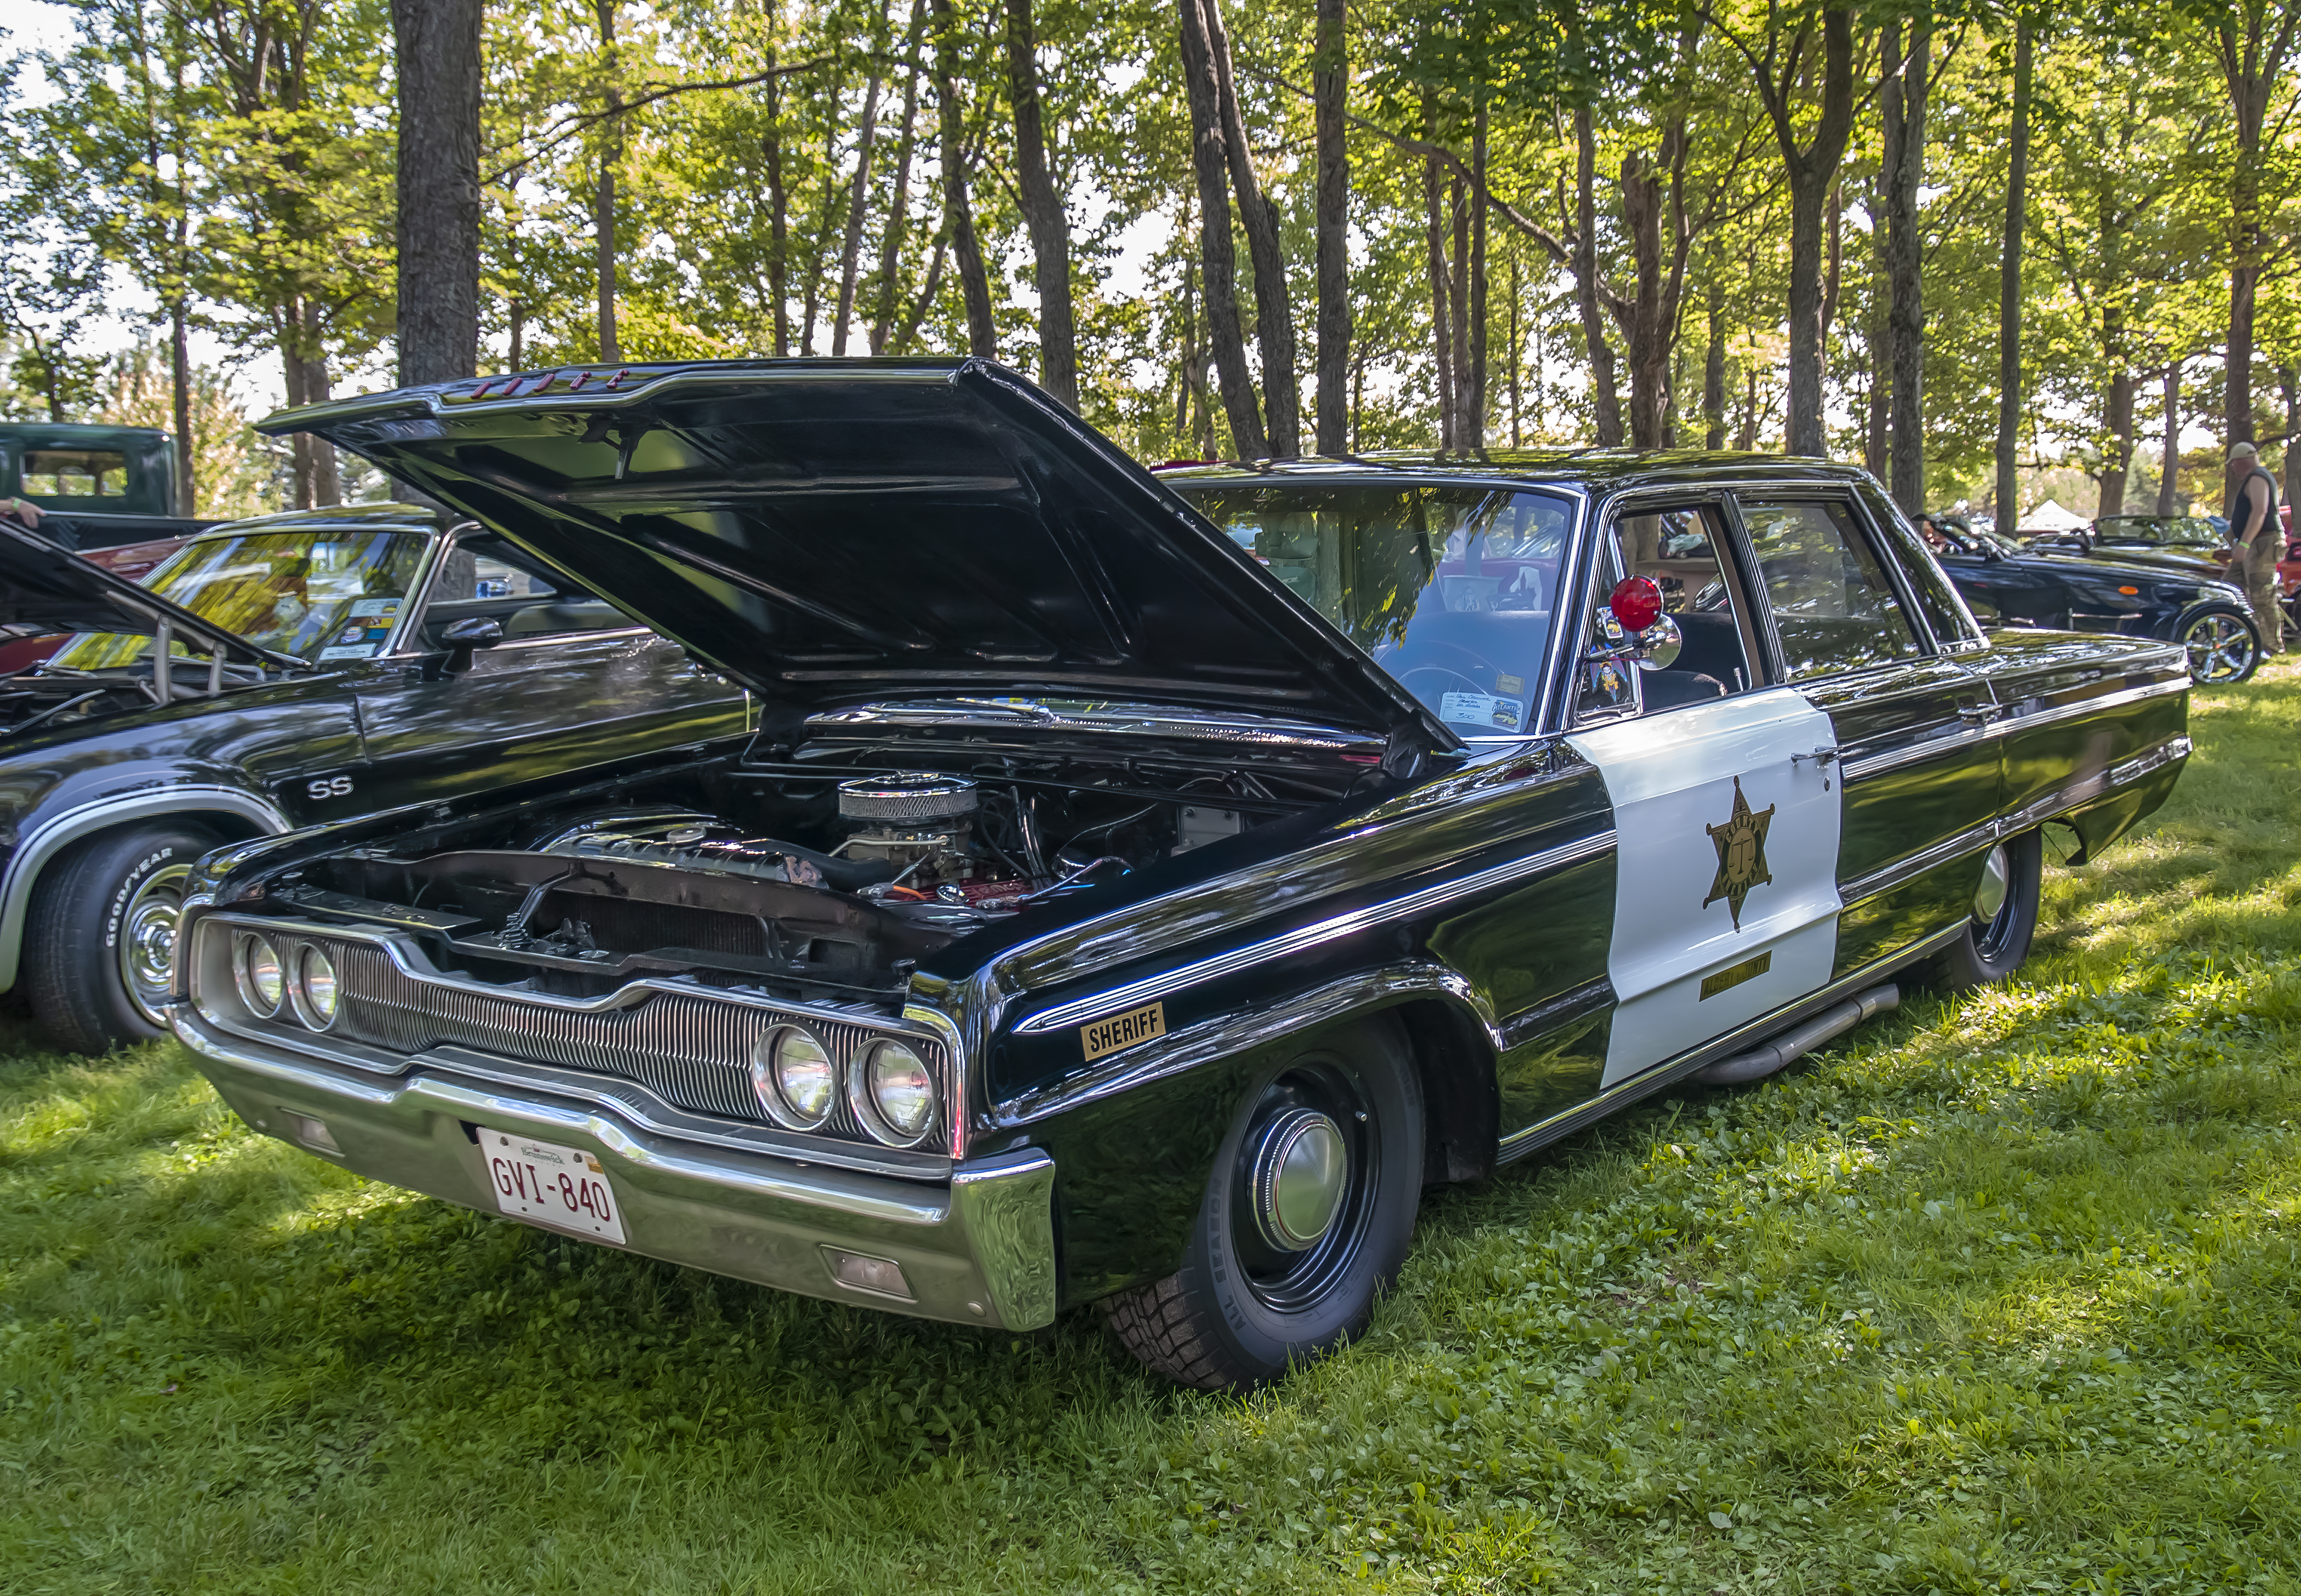 1966 Dodge Polara police car